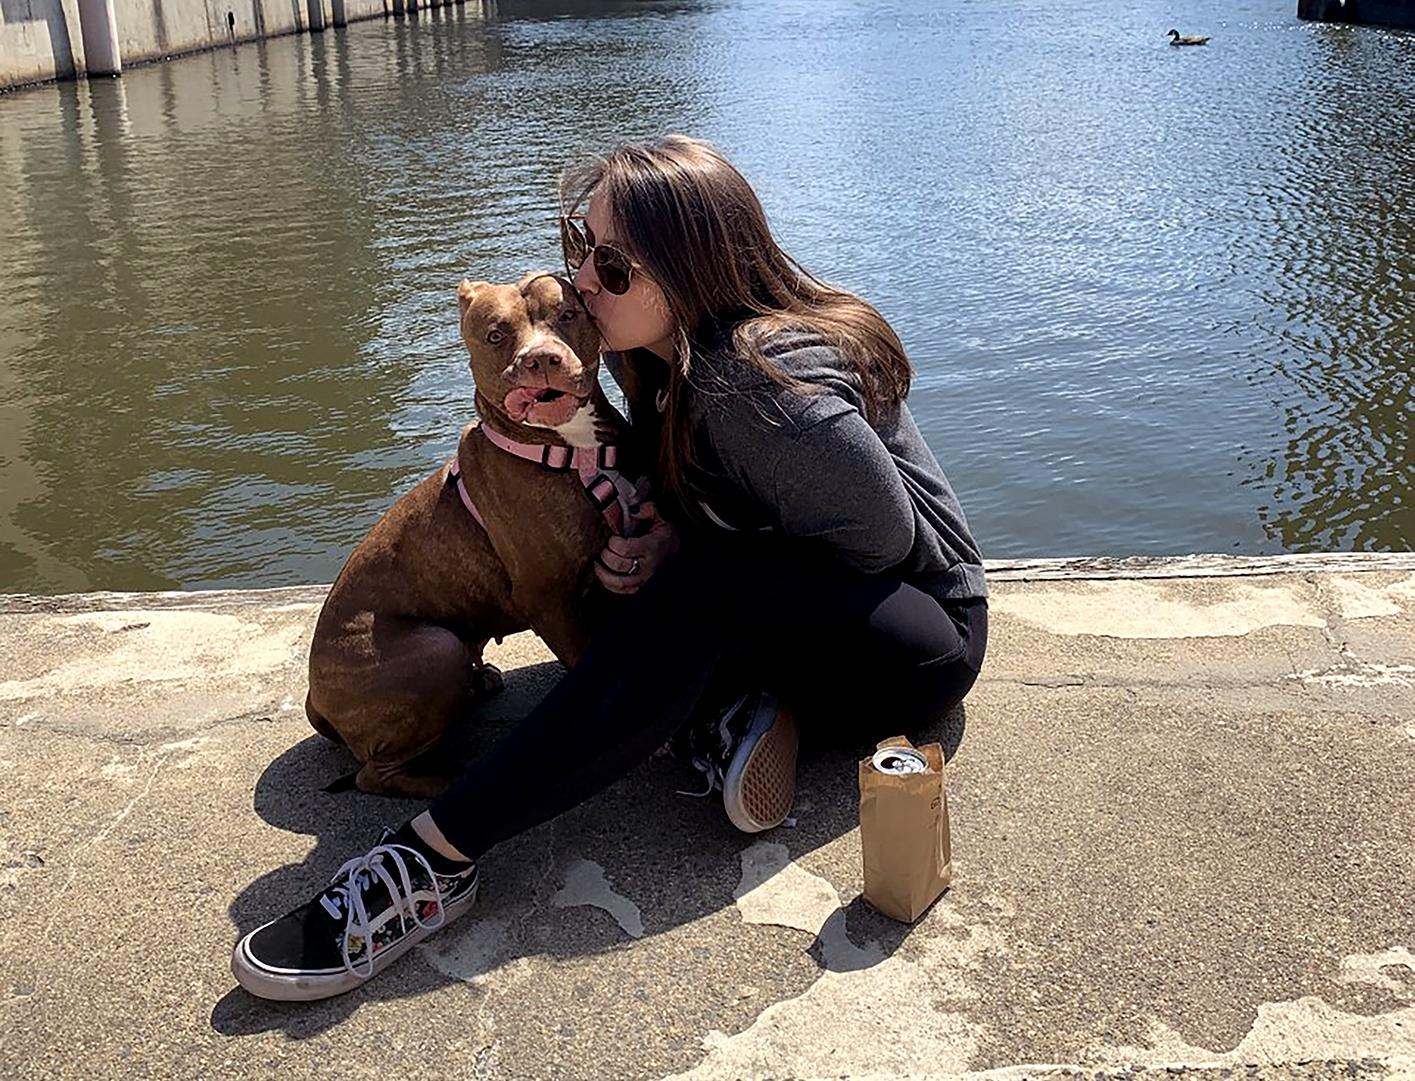 Can fostering pets help mental health during the pandemic?